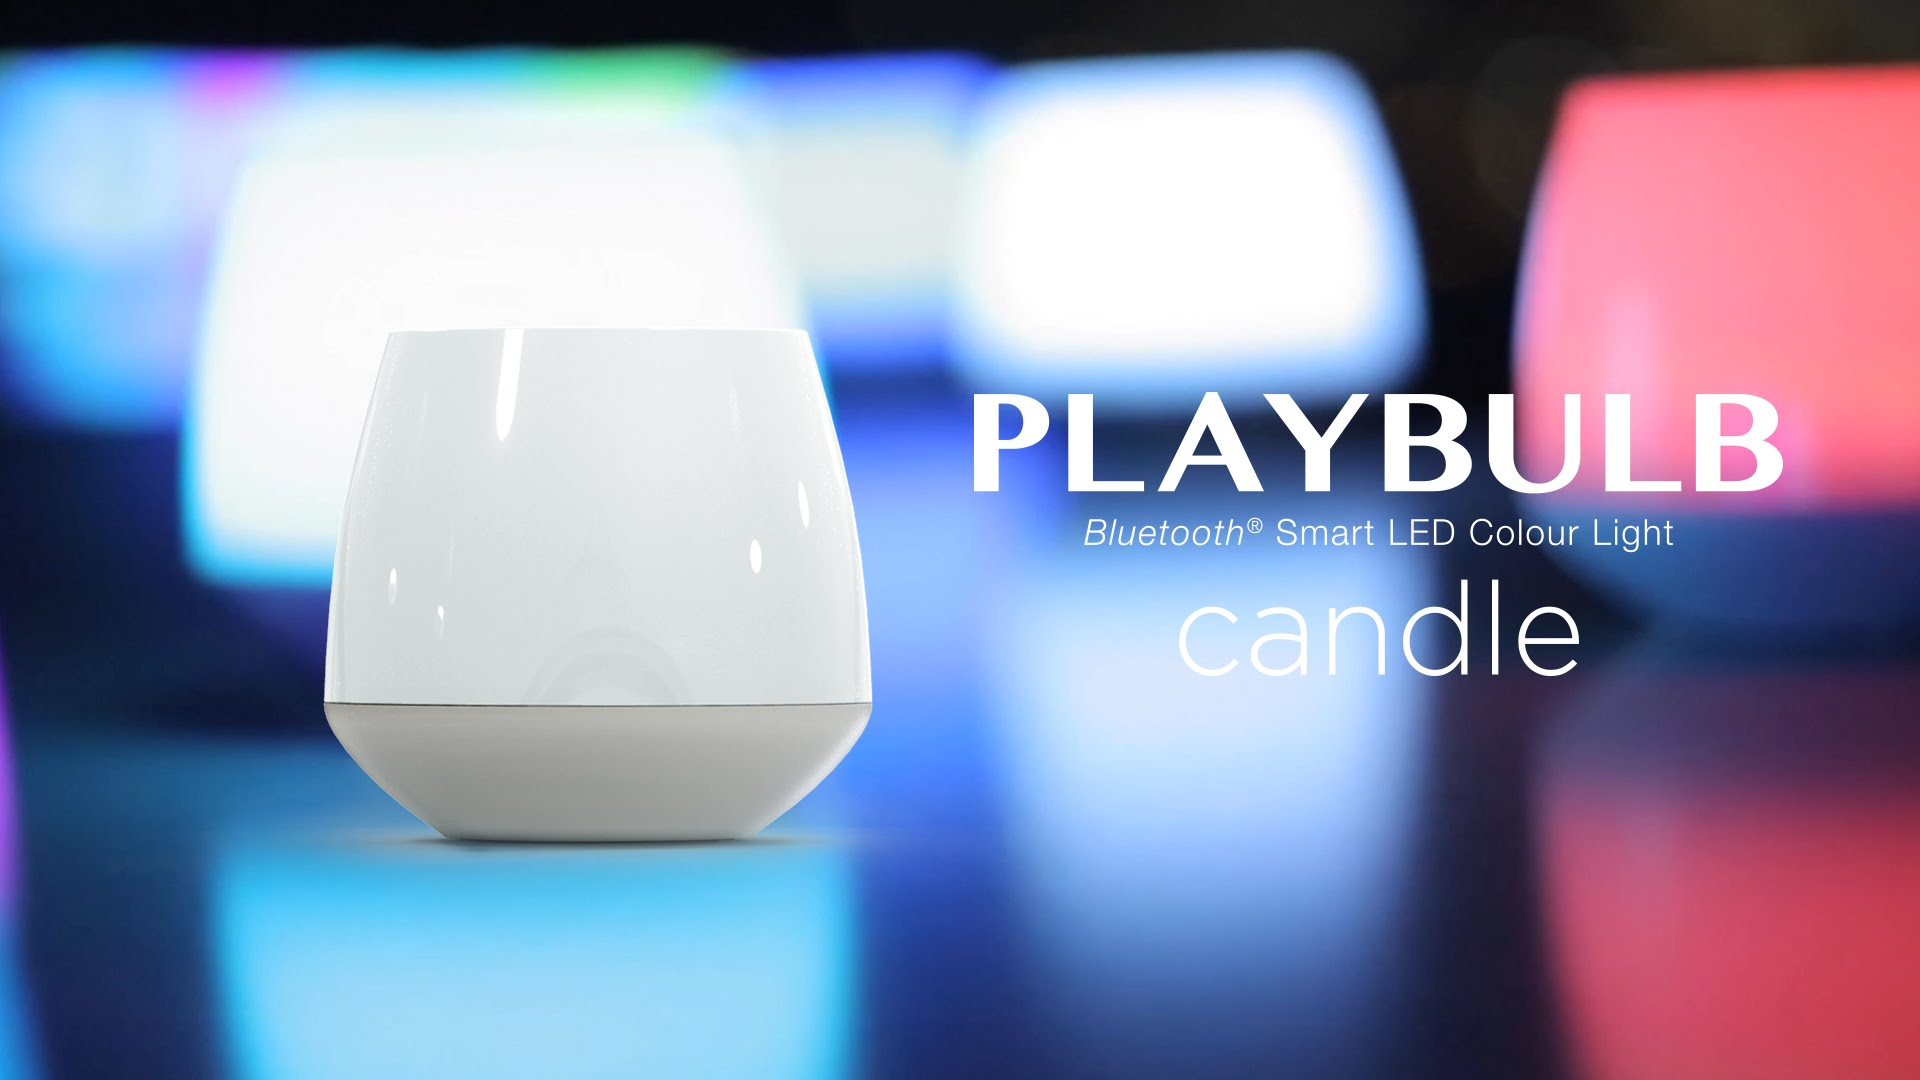 bougie connectée Playbulb Candle